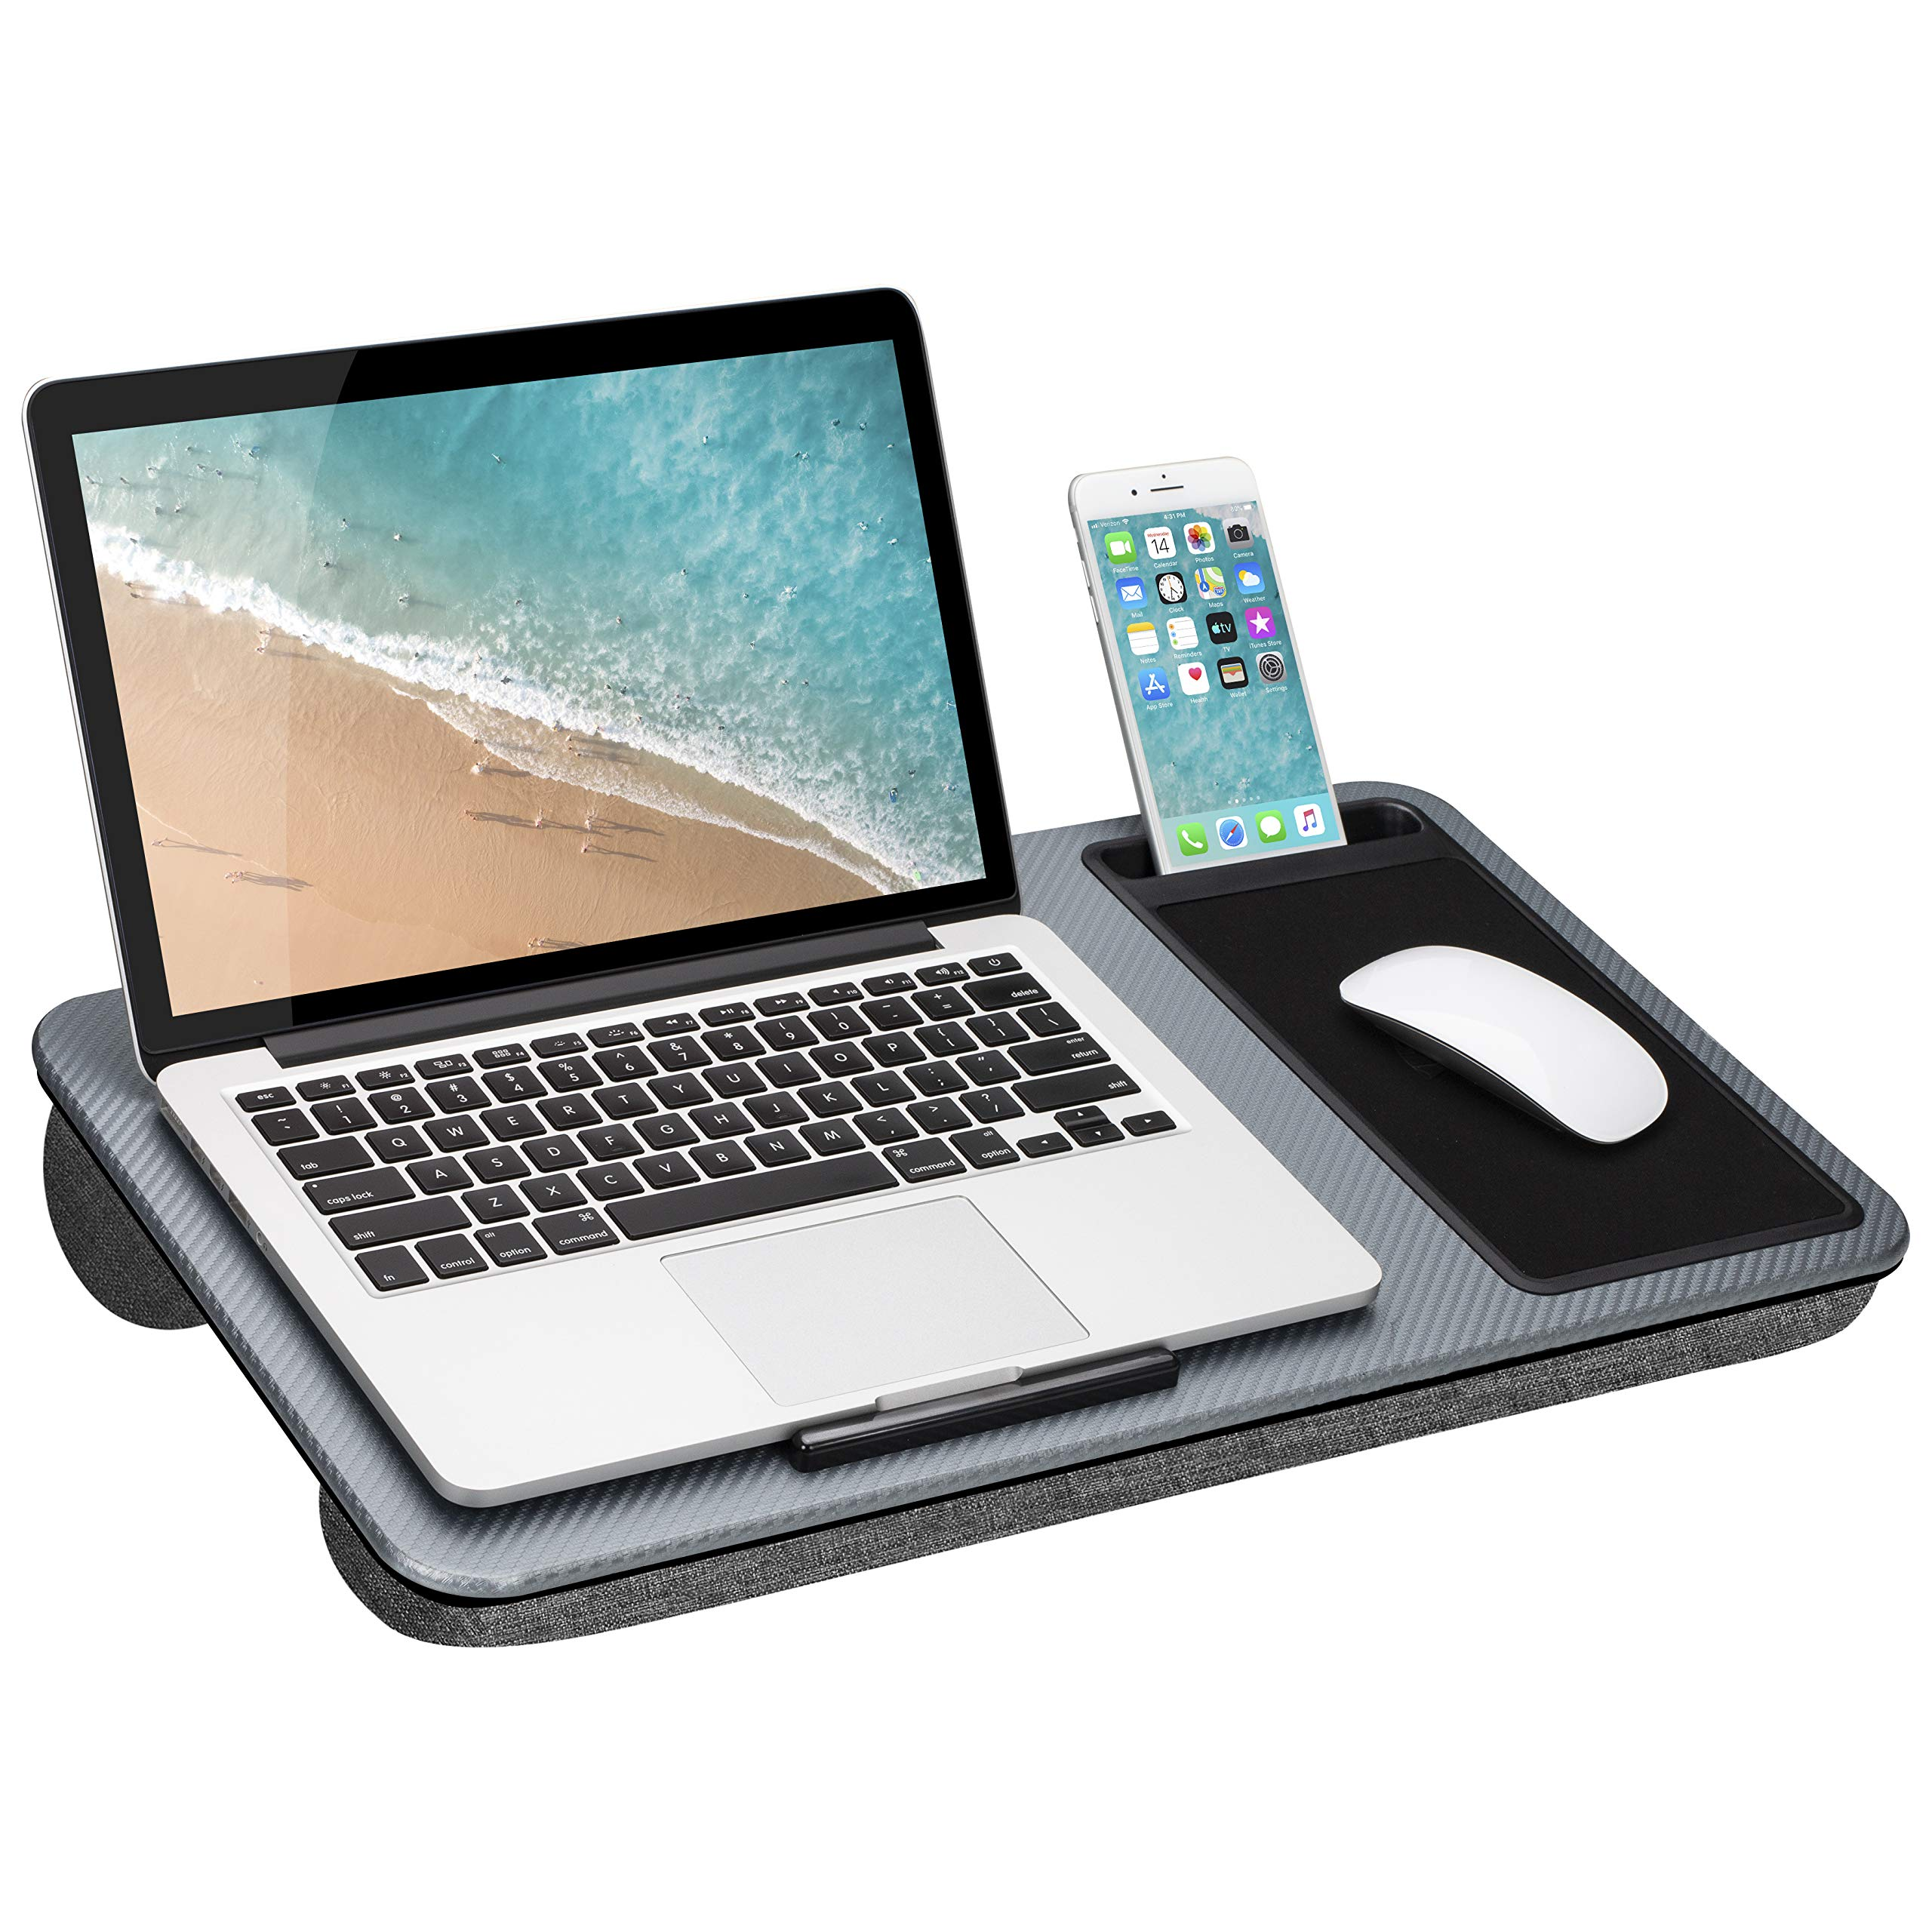 LapGear Home Office Lap Desk with Device Ledge, Mouse Pad, and Phone Holder - Silver Carbon - Fits up to 15.6 Inch Laptops - Style No. 91585 by LapGear